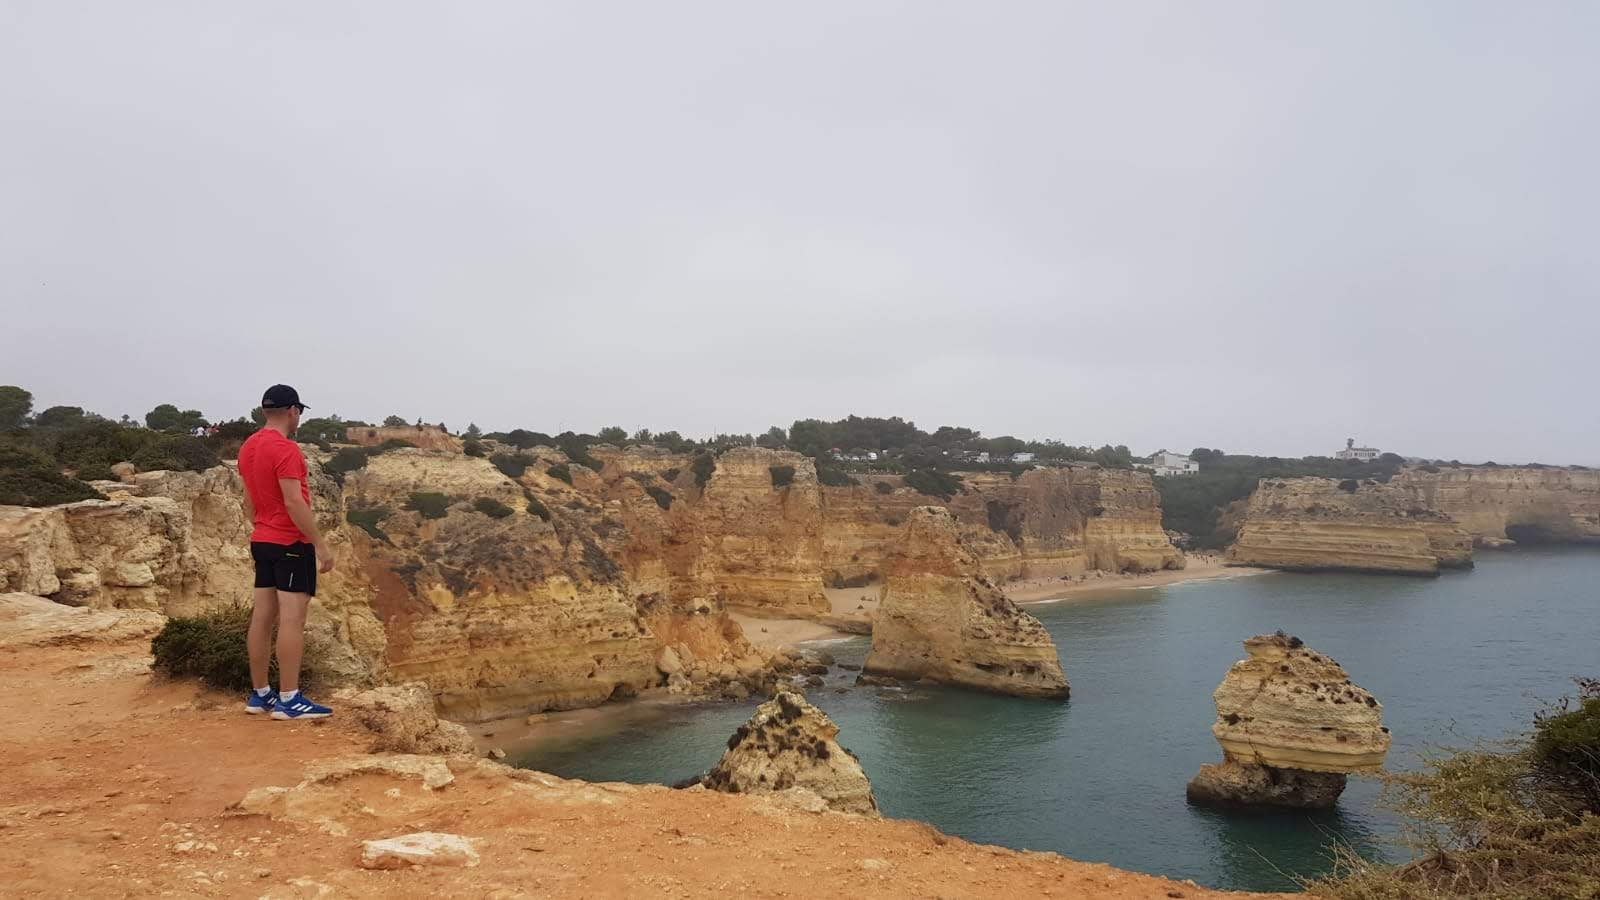 Looking out on the headland trail in the Algarve